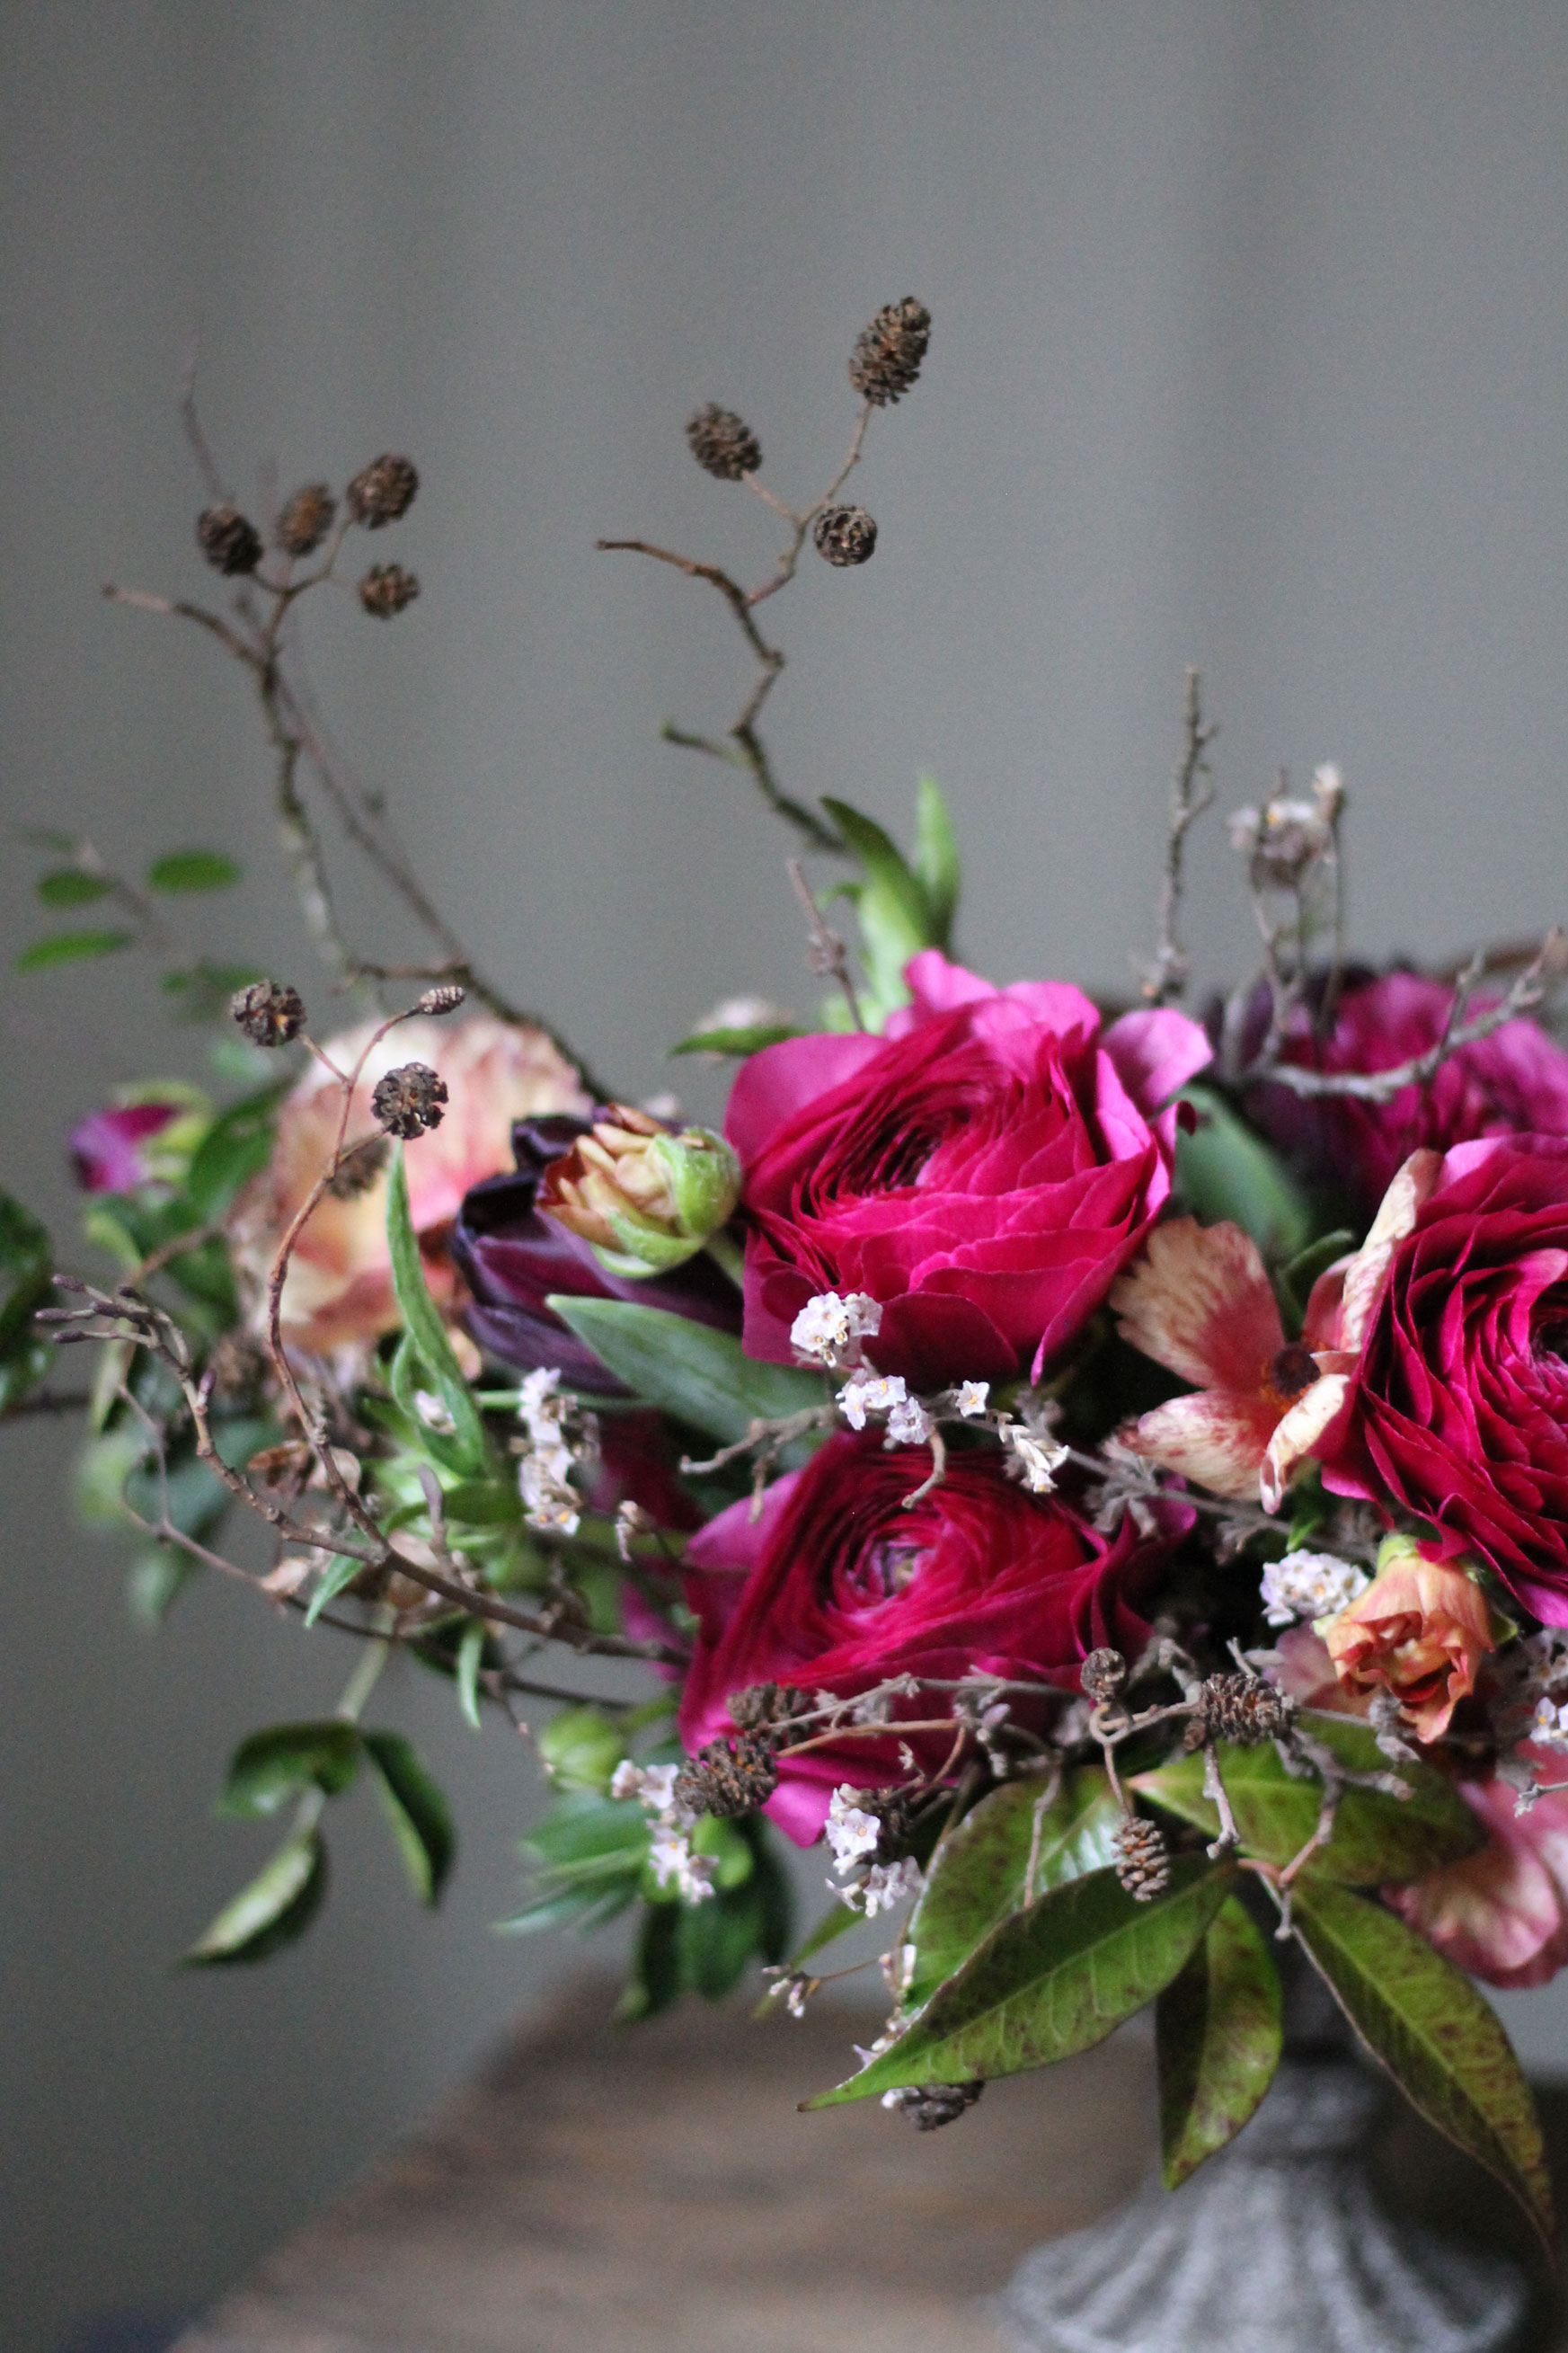 sarah-harper-floral-design-luxury-wedding-florist-flowers-oxfordshite-cotsworlds-gallery-IMG_7946-copy